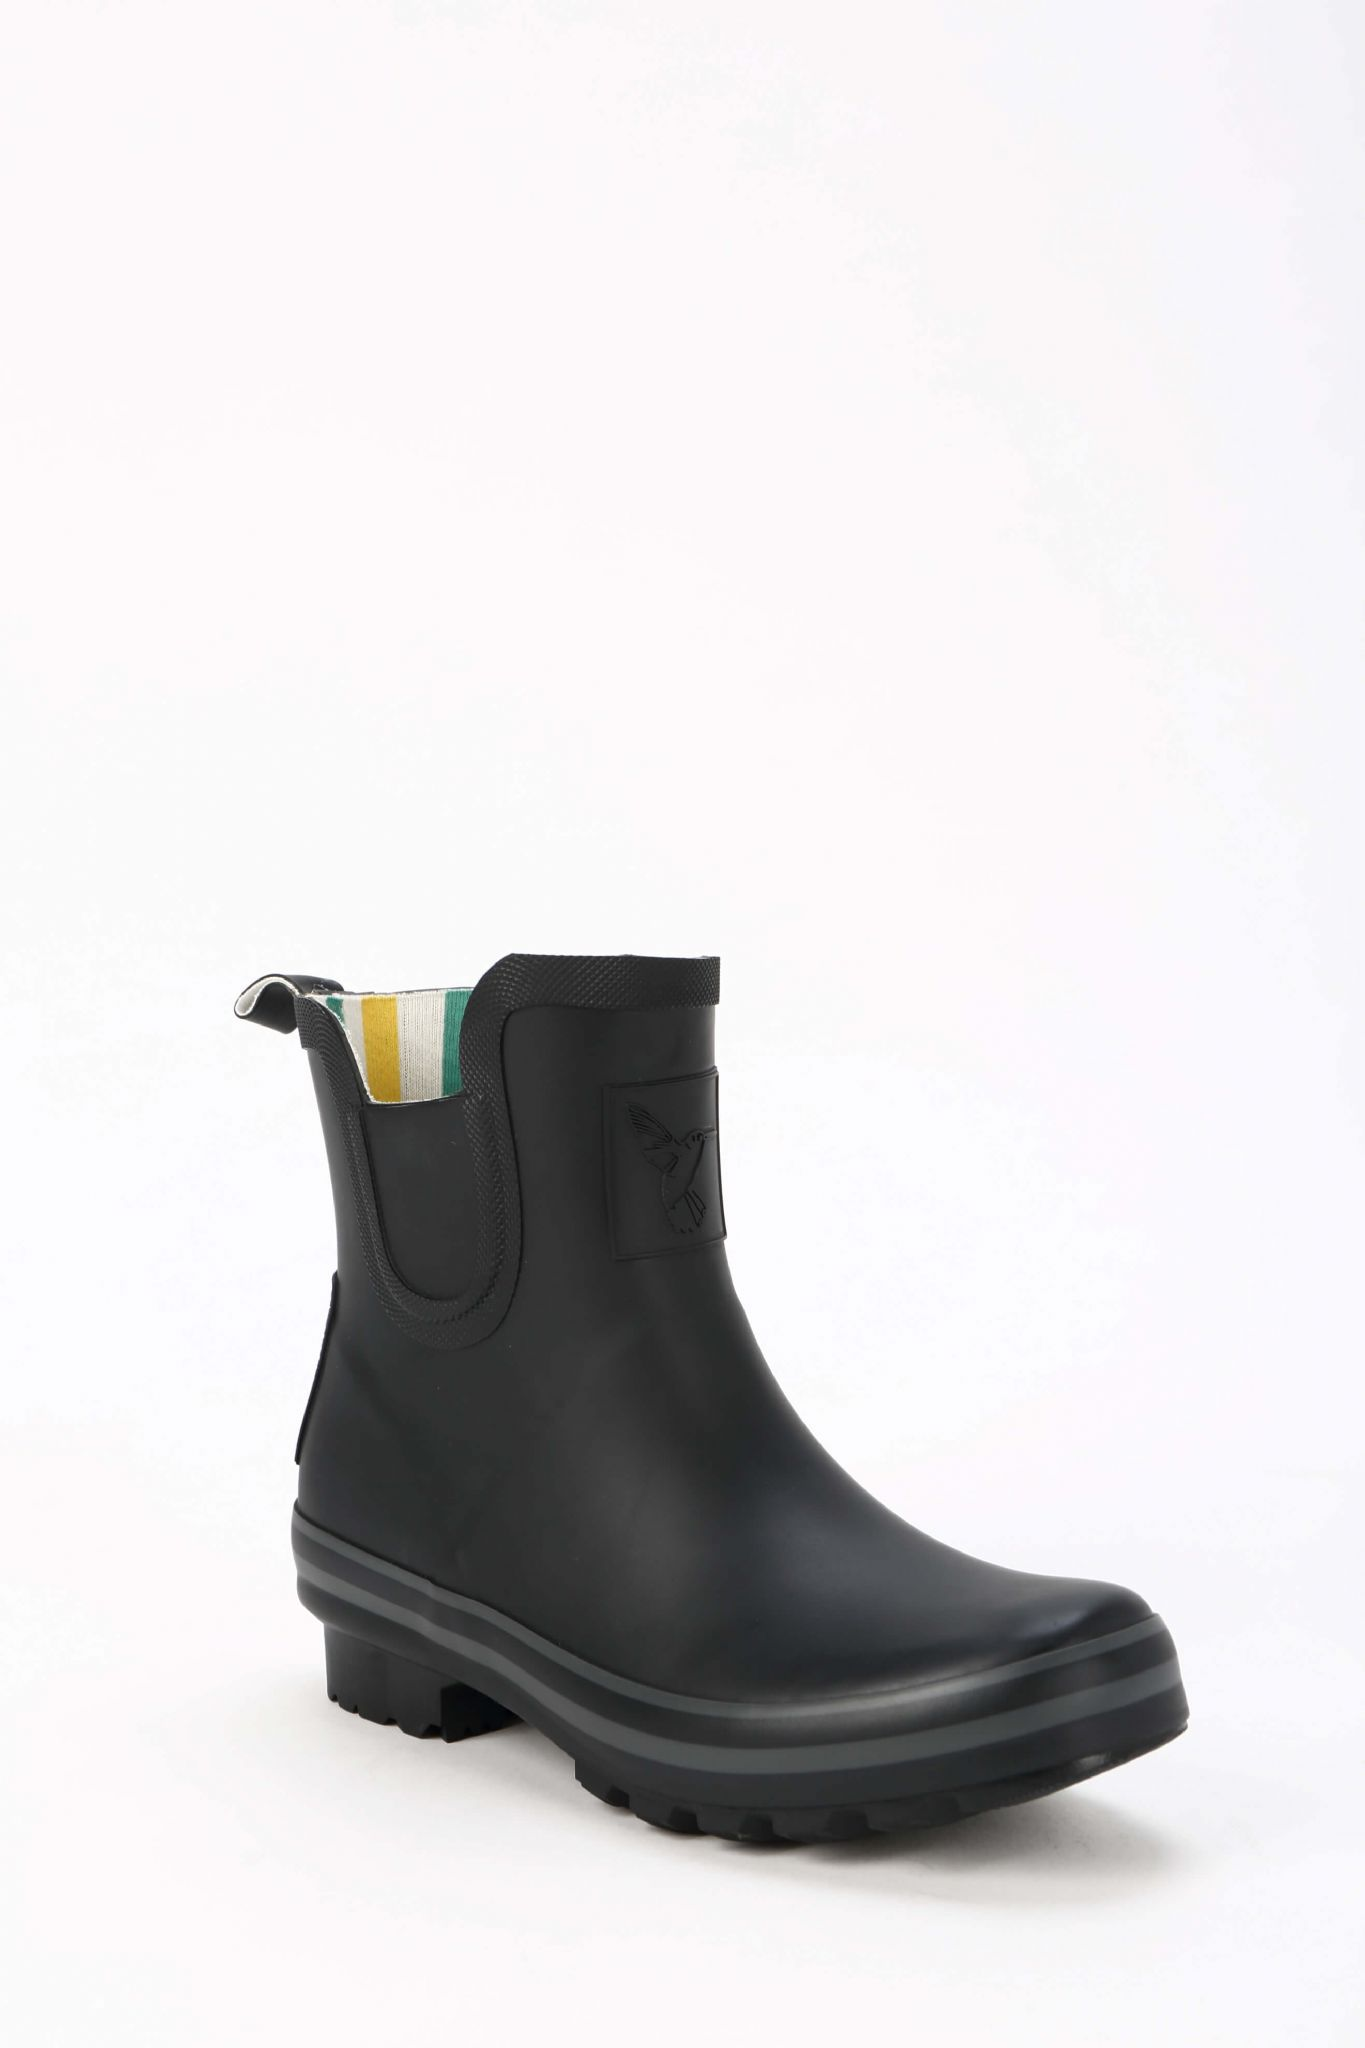 Black Ankle Wellington Boots Funky Wellies